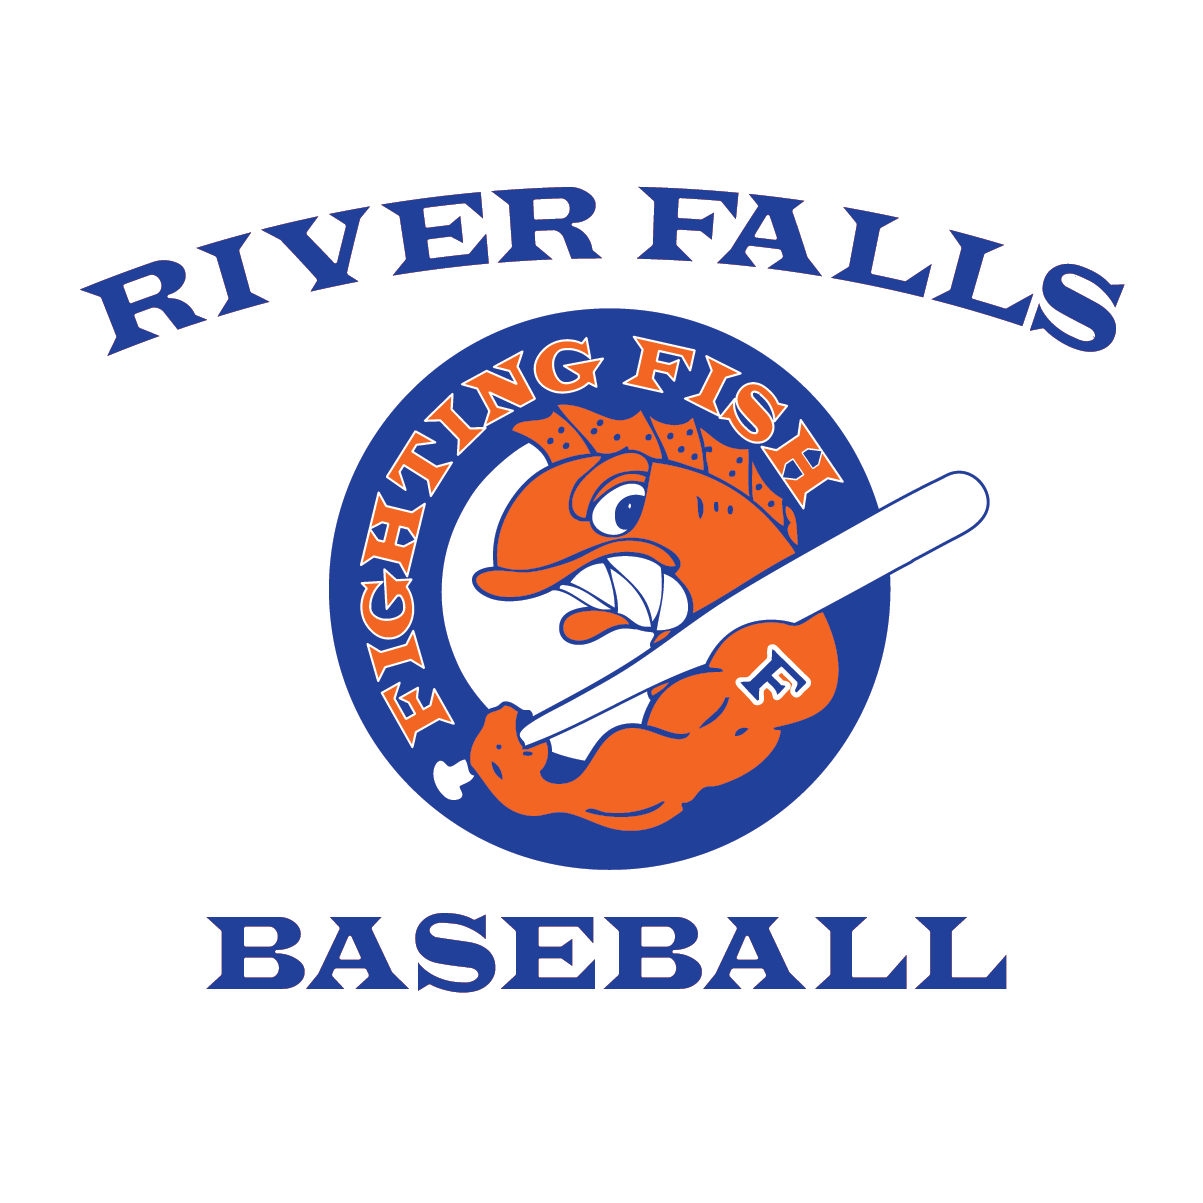 Baseball stitch clipart large print image black and white library River City Stitch   River Falls Fighting Fish Archives - River City ... image black and white library